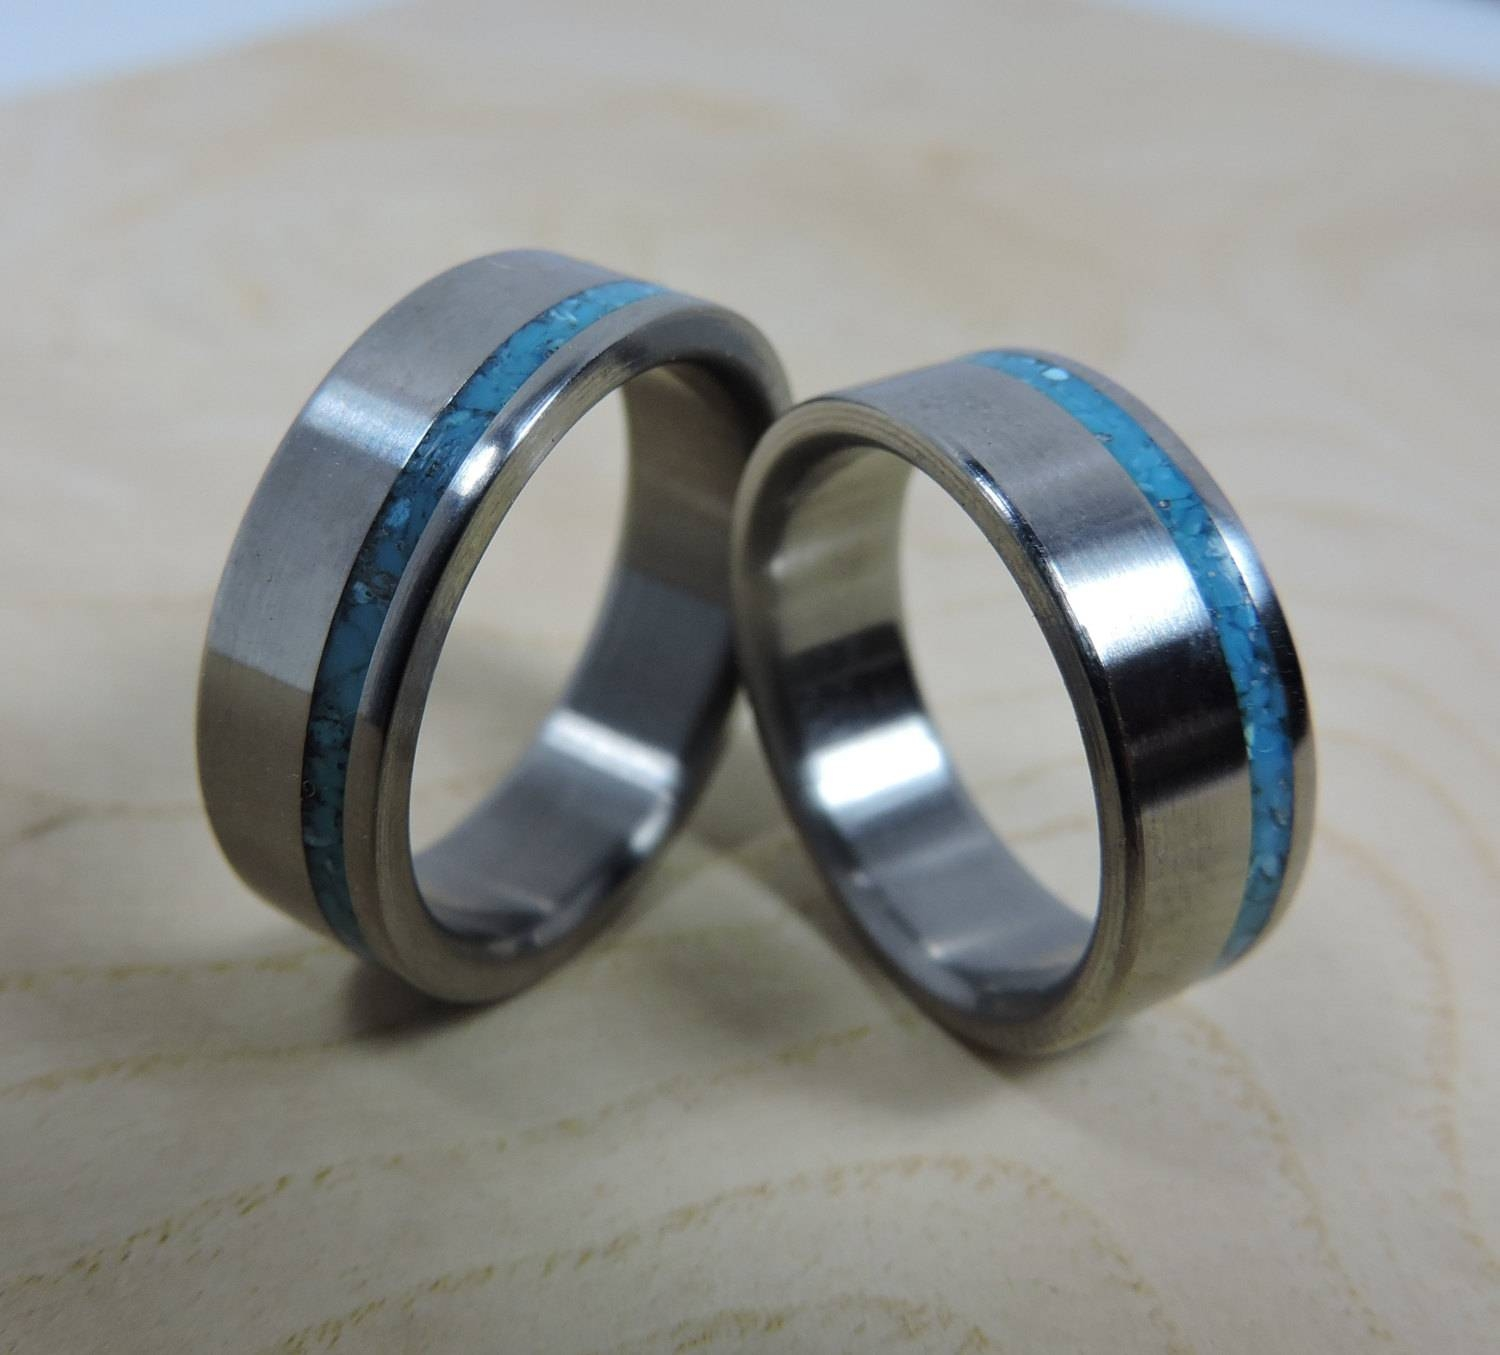 Titanium Rings, Wedding Rings, Turquoise Rings, Wedding Band Set Regarding Black Titanium Wedding Bands Sets (Gallery 14 of 15)